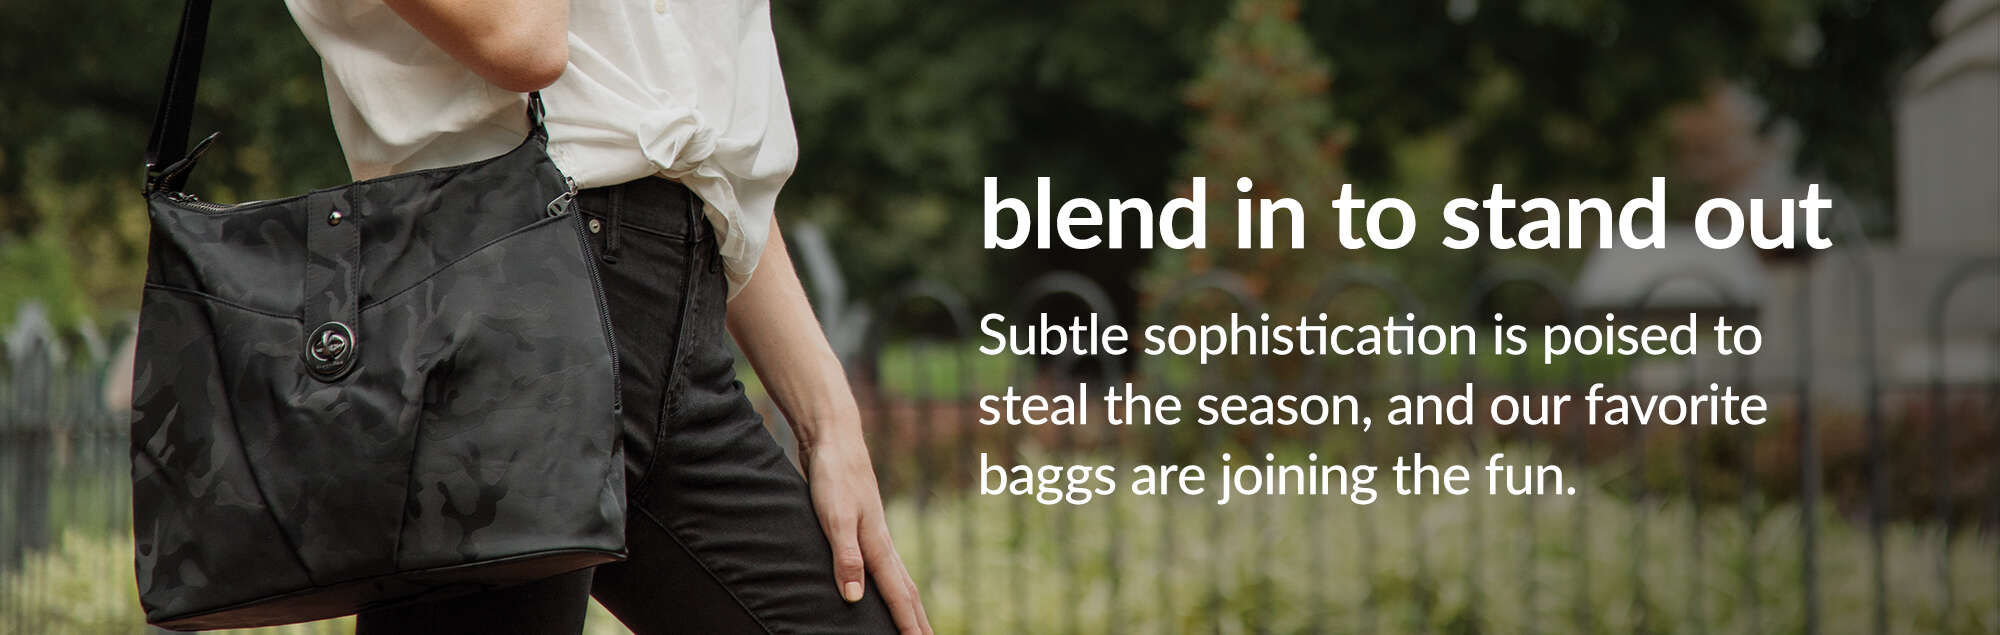 'Blend in to stand out. Subtle sophistication is poised to steal the season